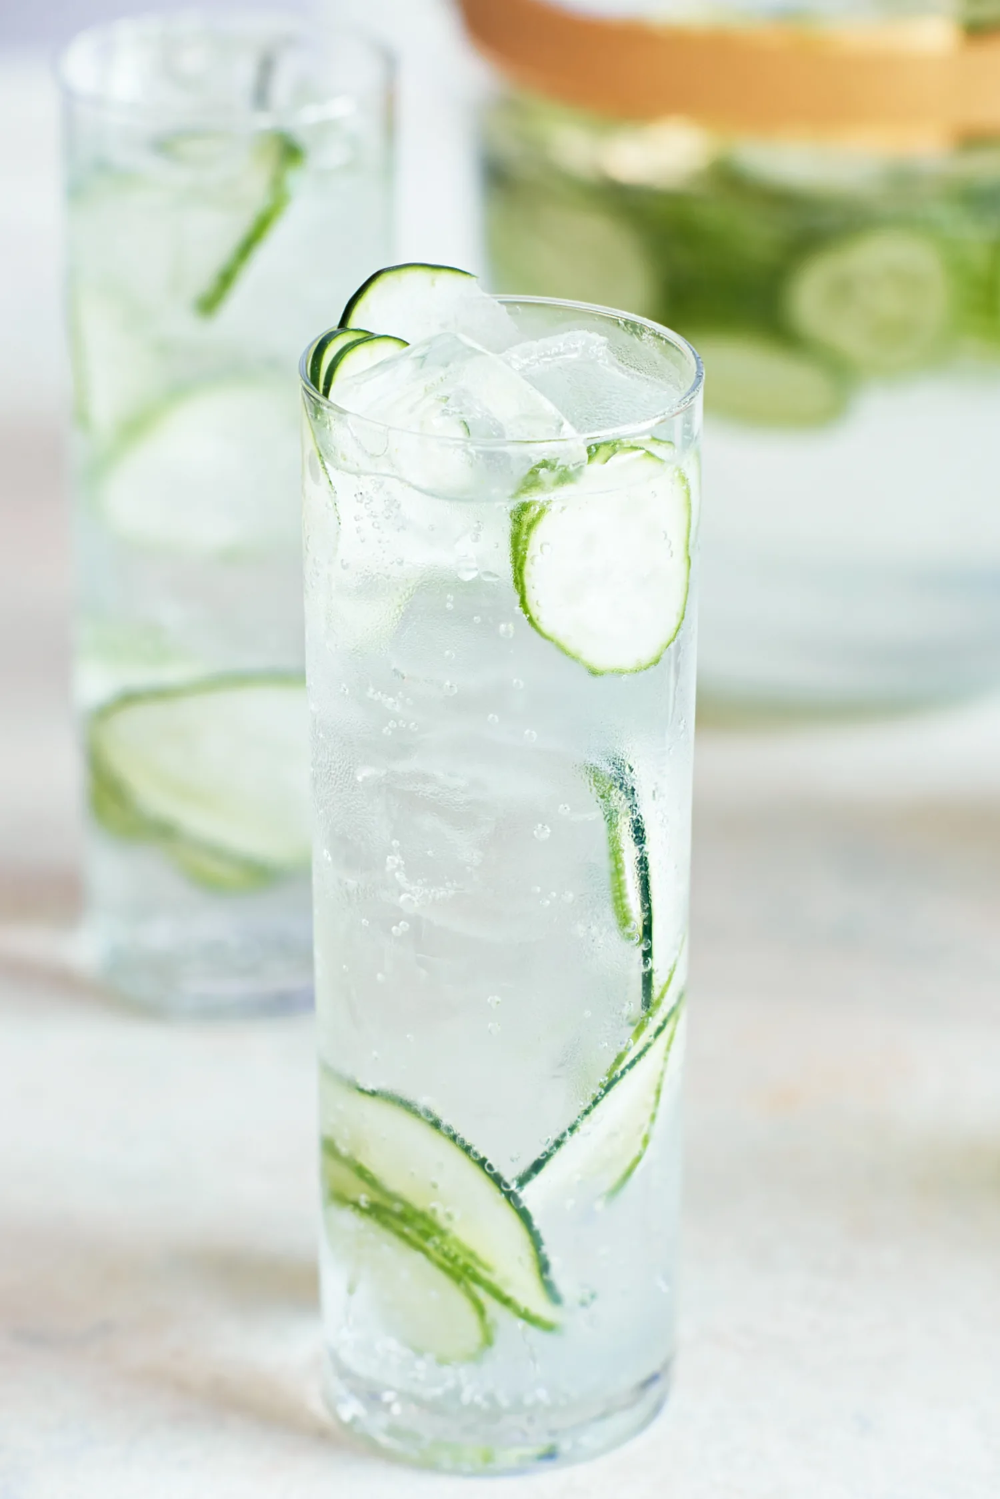 What To Make With That Bottle Of Gin Gin Drinks Pitcher Cocktails Gin And Tonic